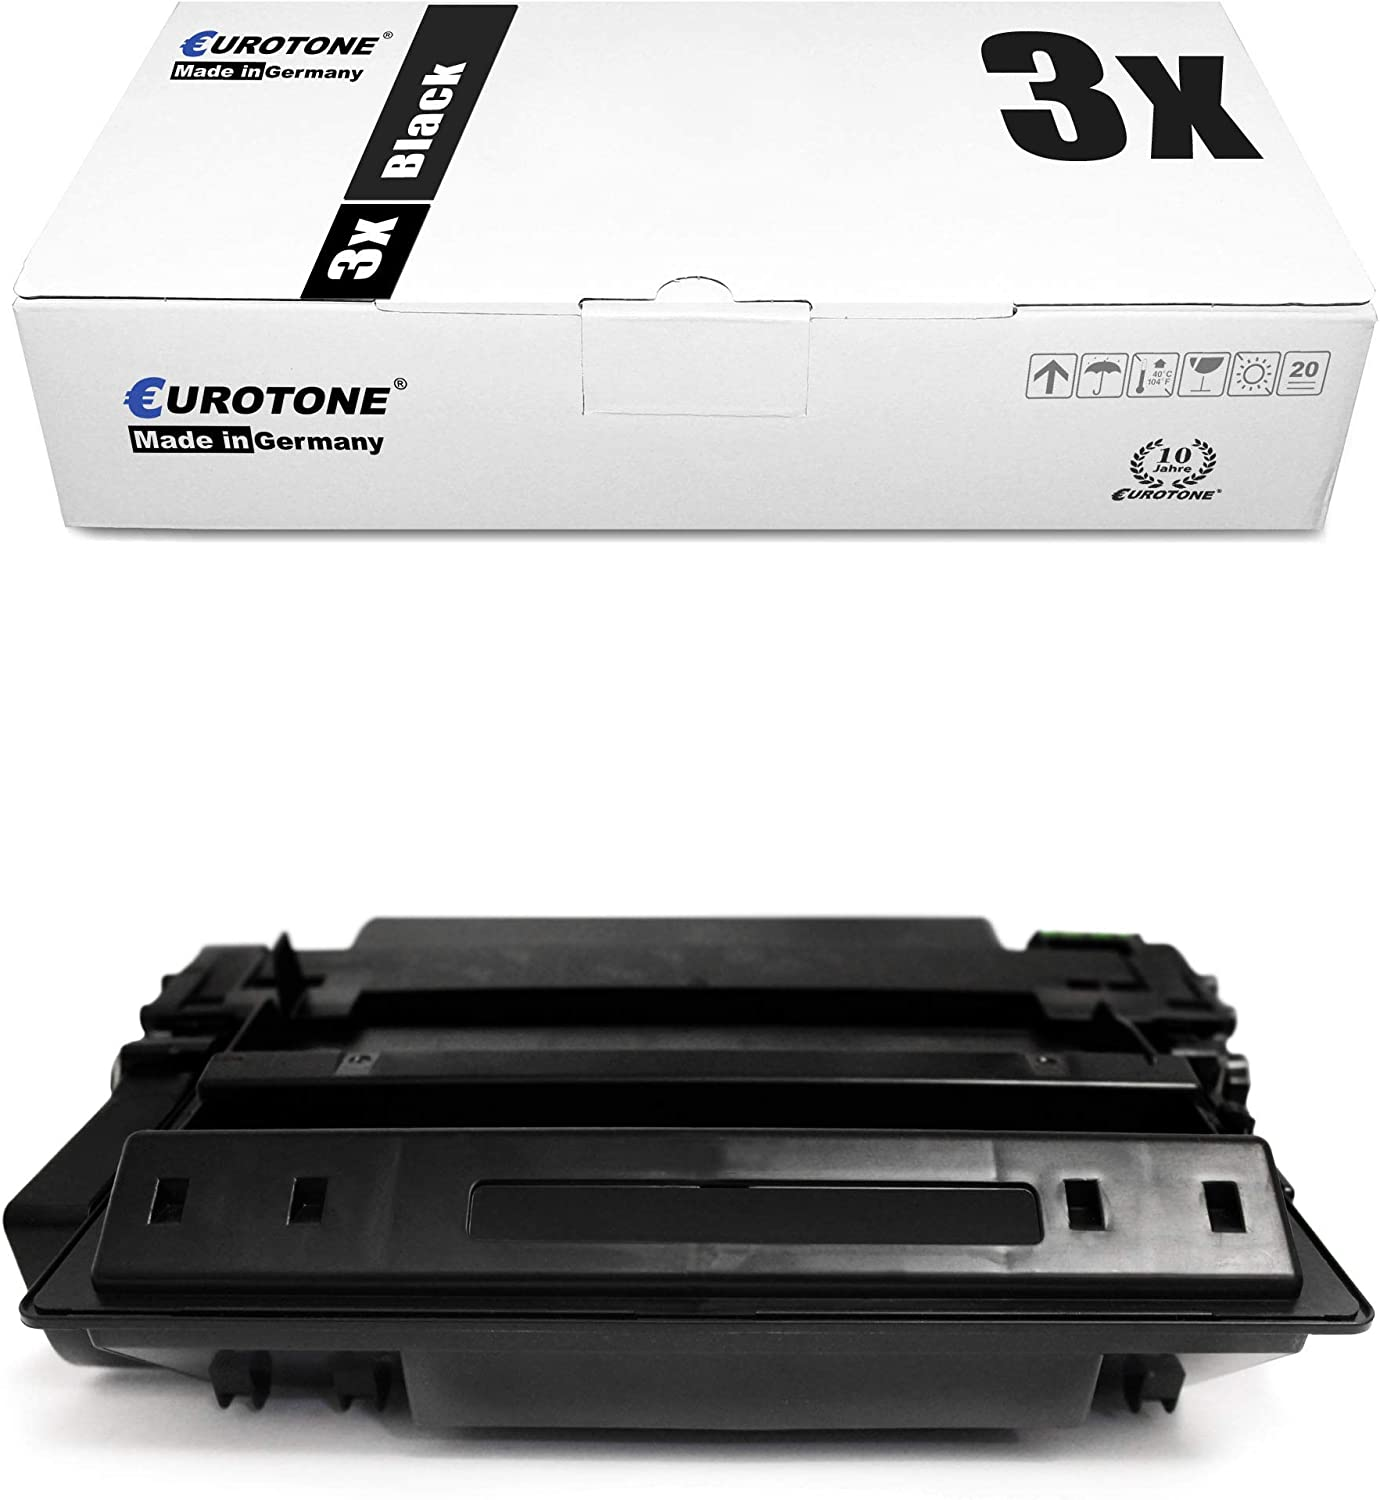 10x Eurotone Remanufactured Toner for HP Laserjet P 3011 3015 D X DN N Replaces CE255X 55X